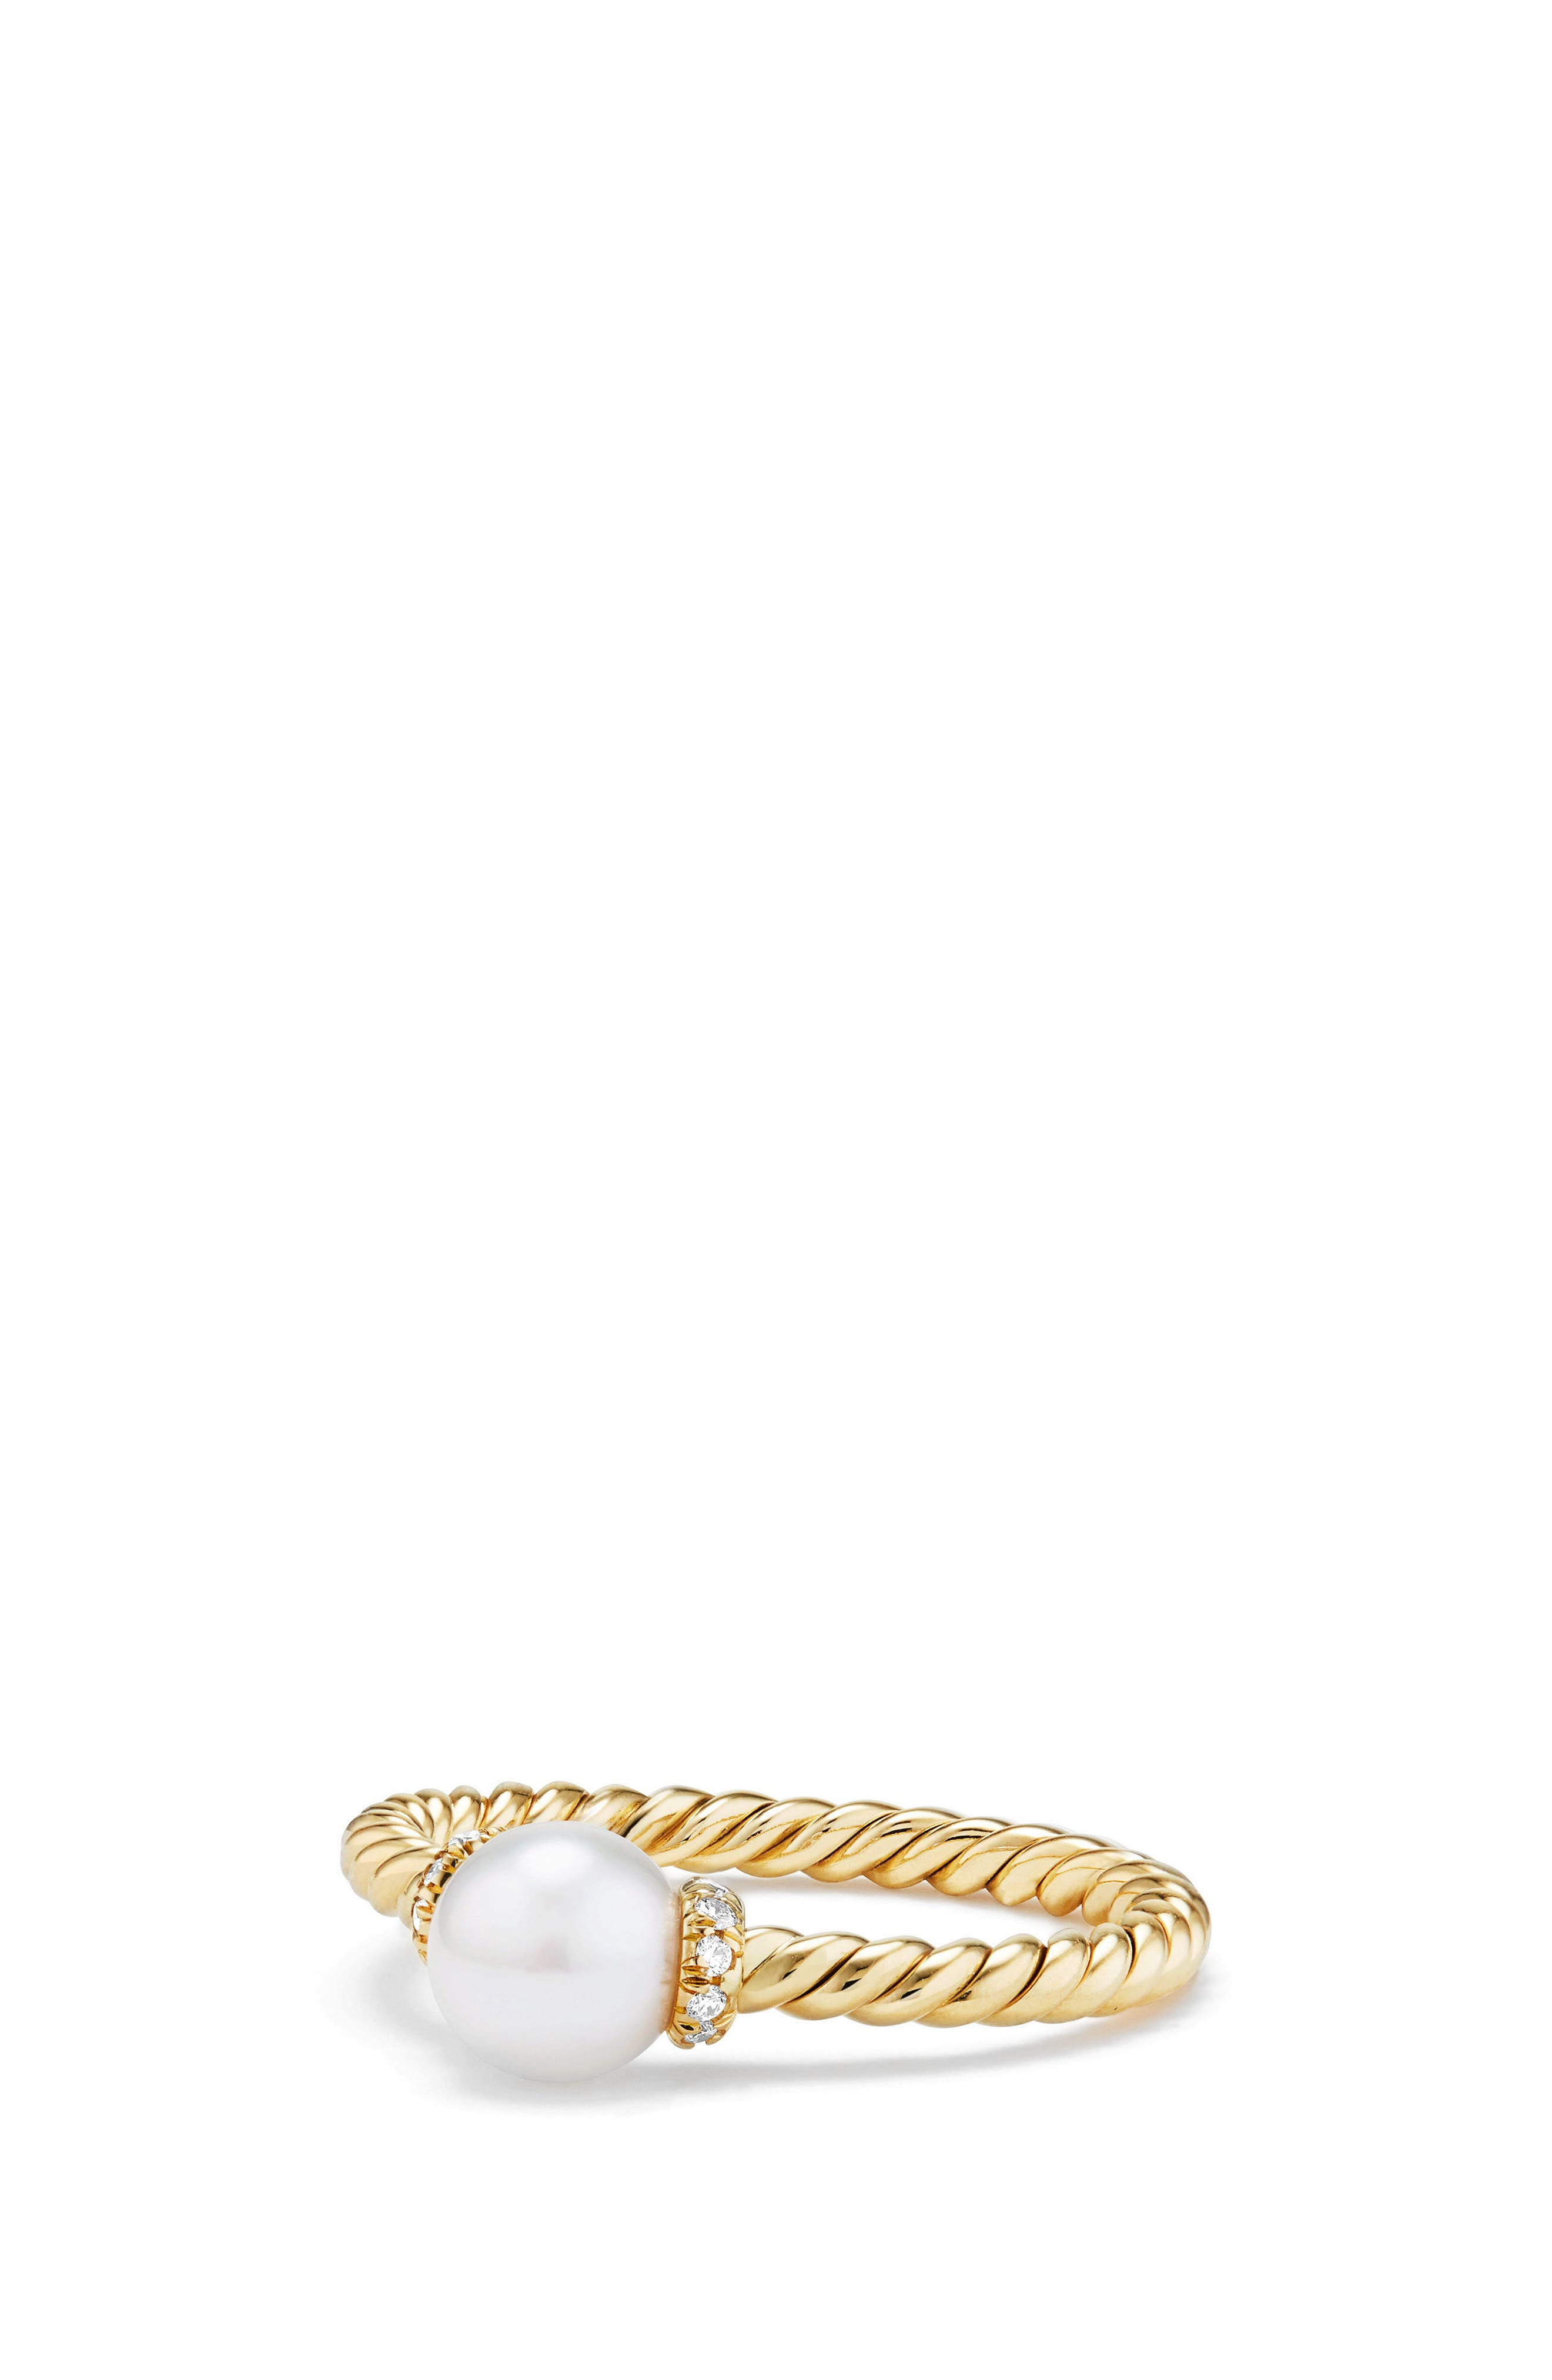 Solari Station Ring with Pearl & Diamonds in 18K Gold,                             Main thumbnail 1, color,                             YELLOW GOLD/ DIAMOND/ PEARL